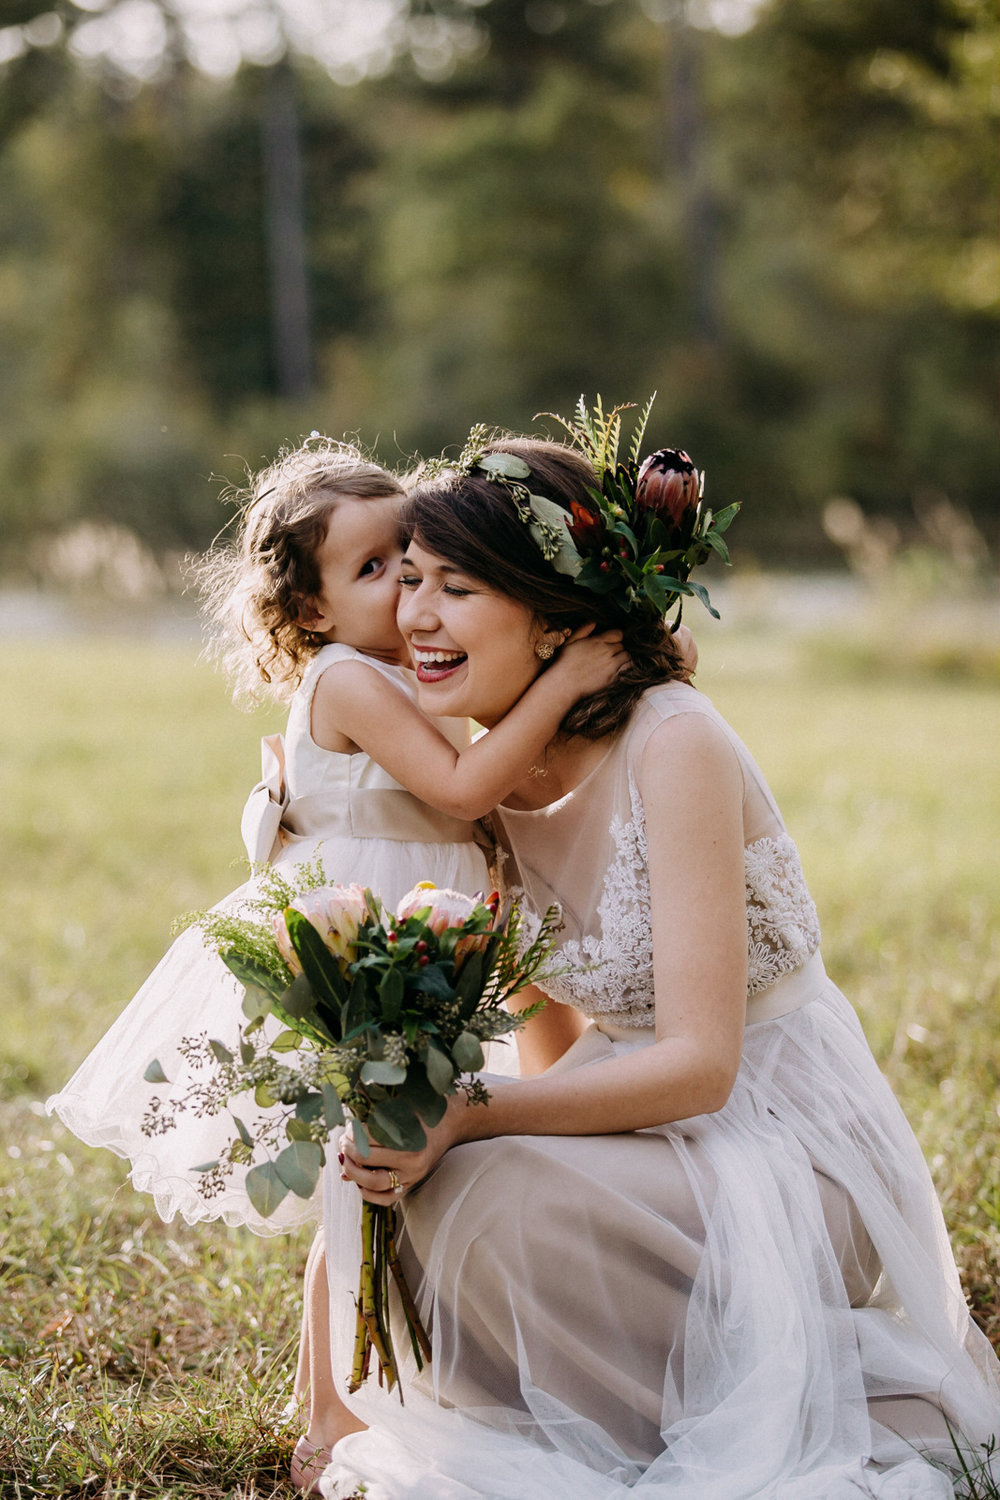 The bride and her flower girl